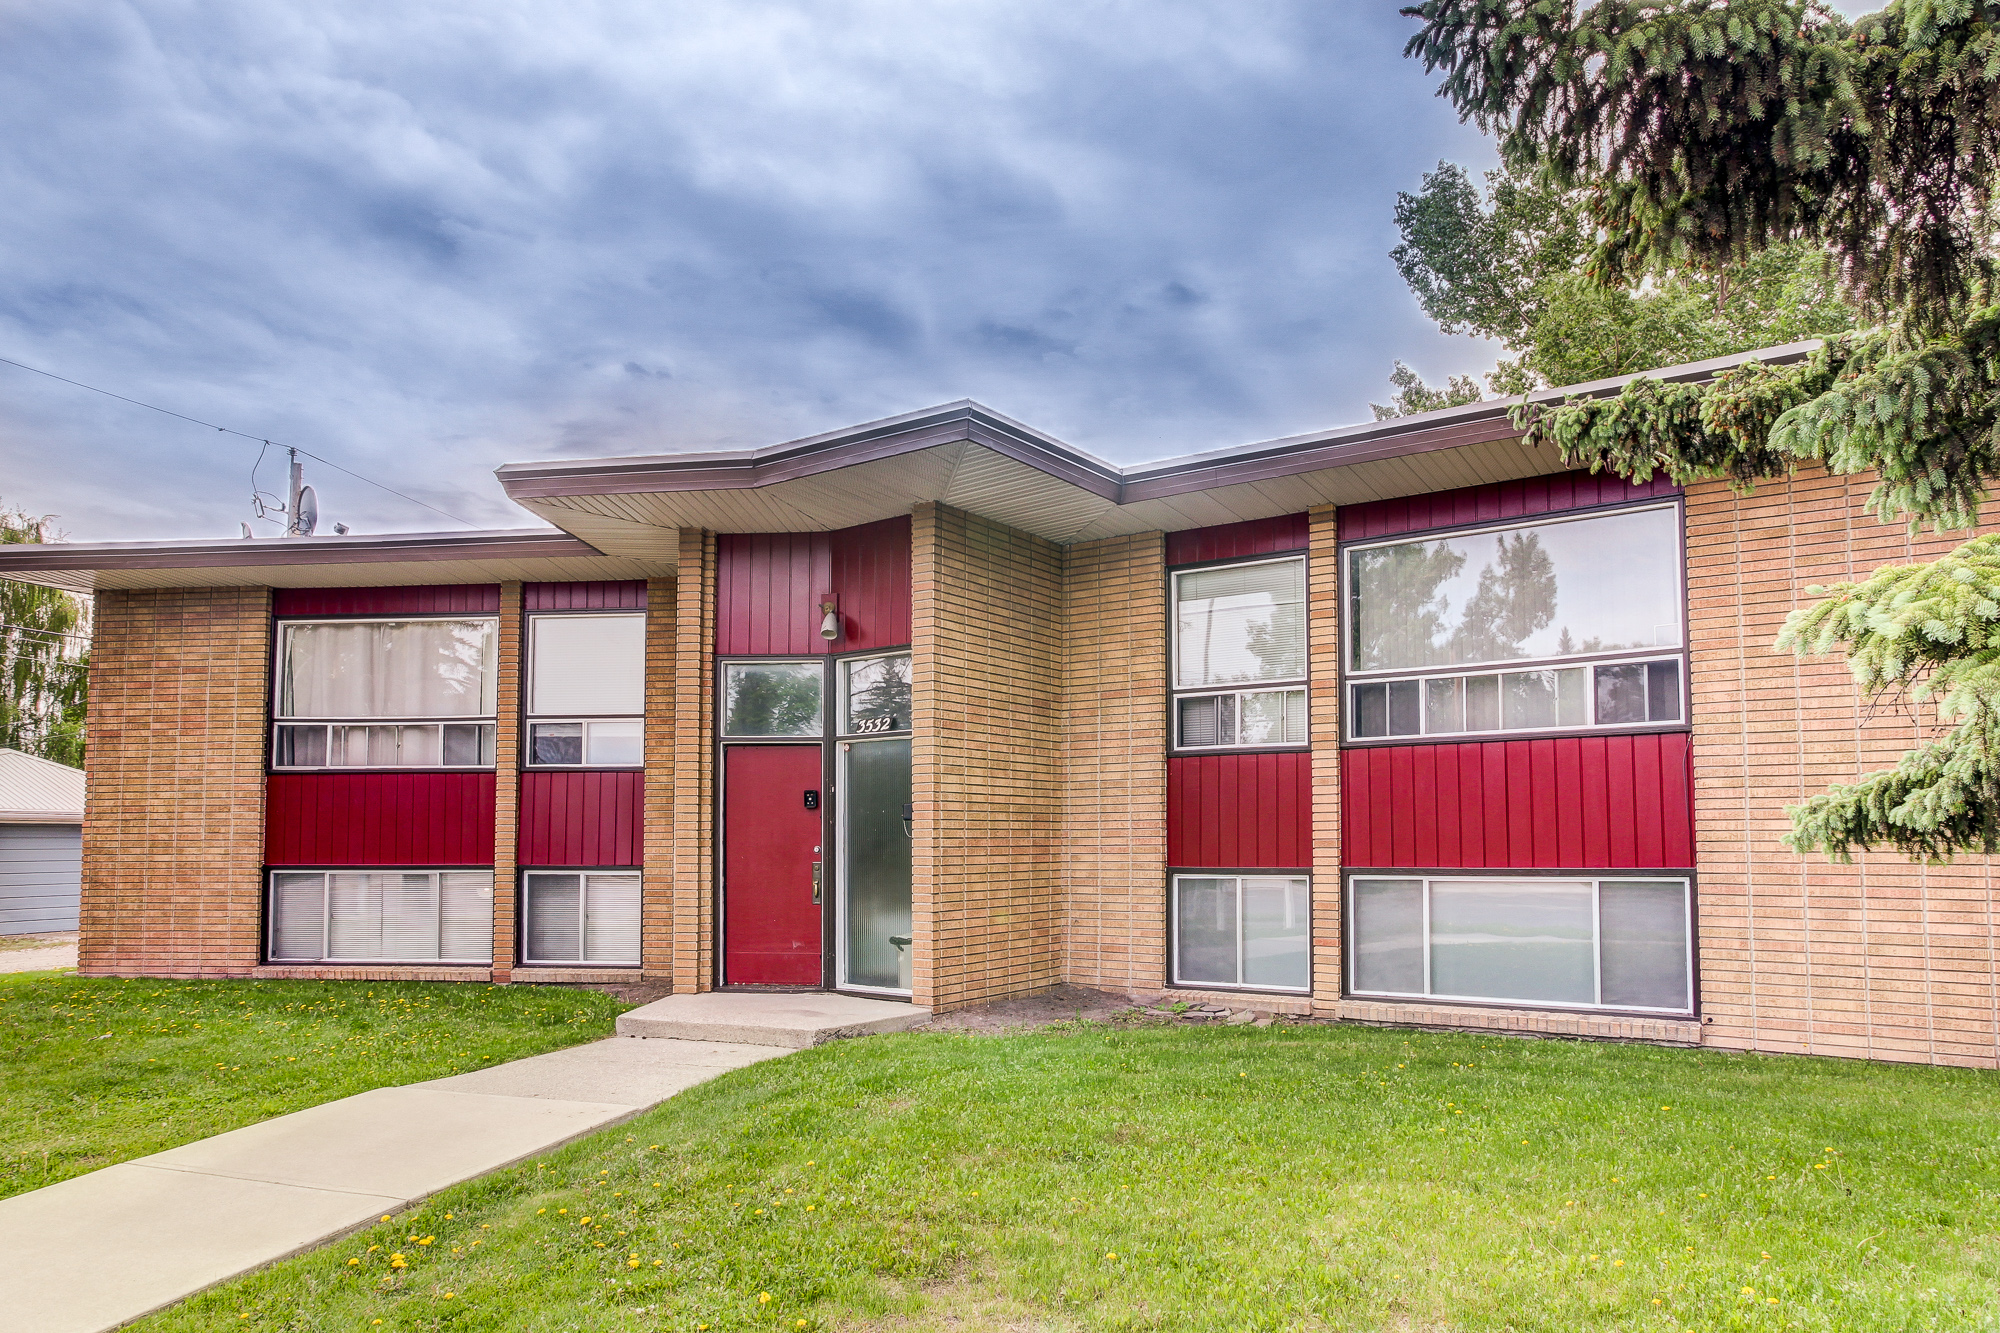 3532 Charleswood Dr NW Rental